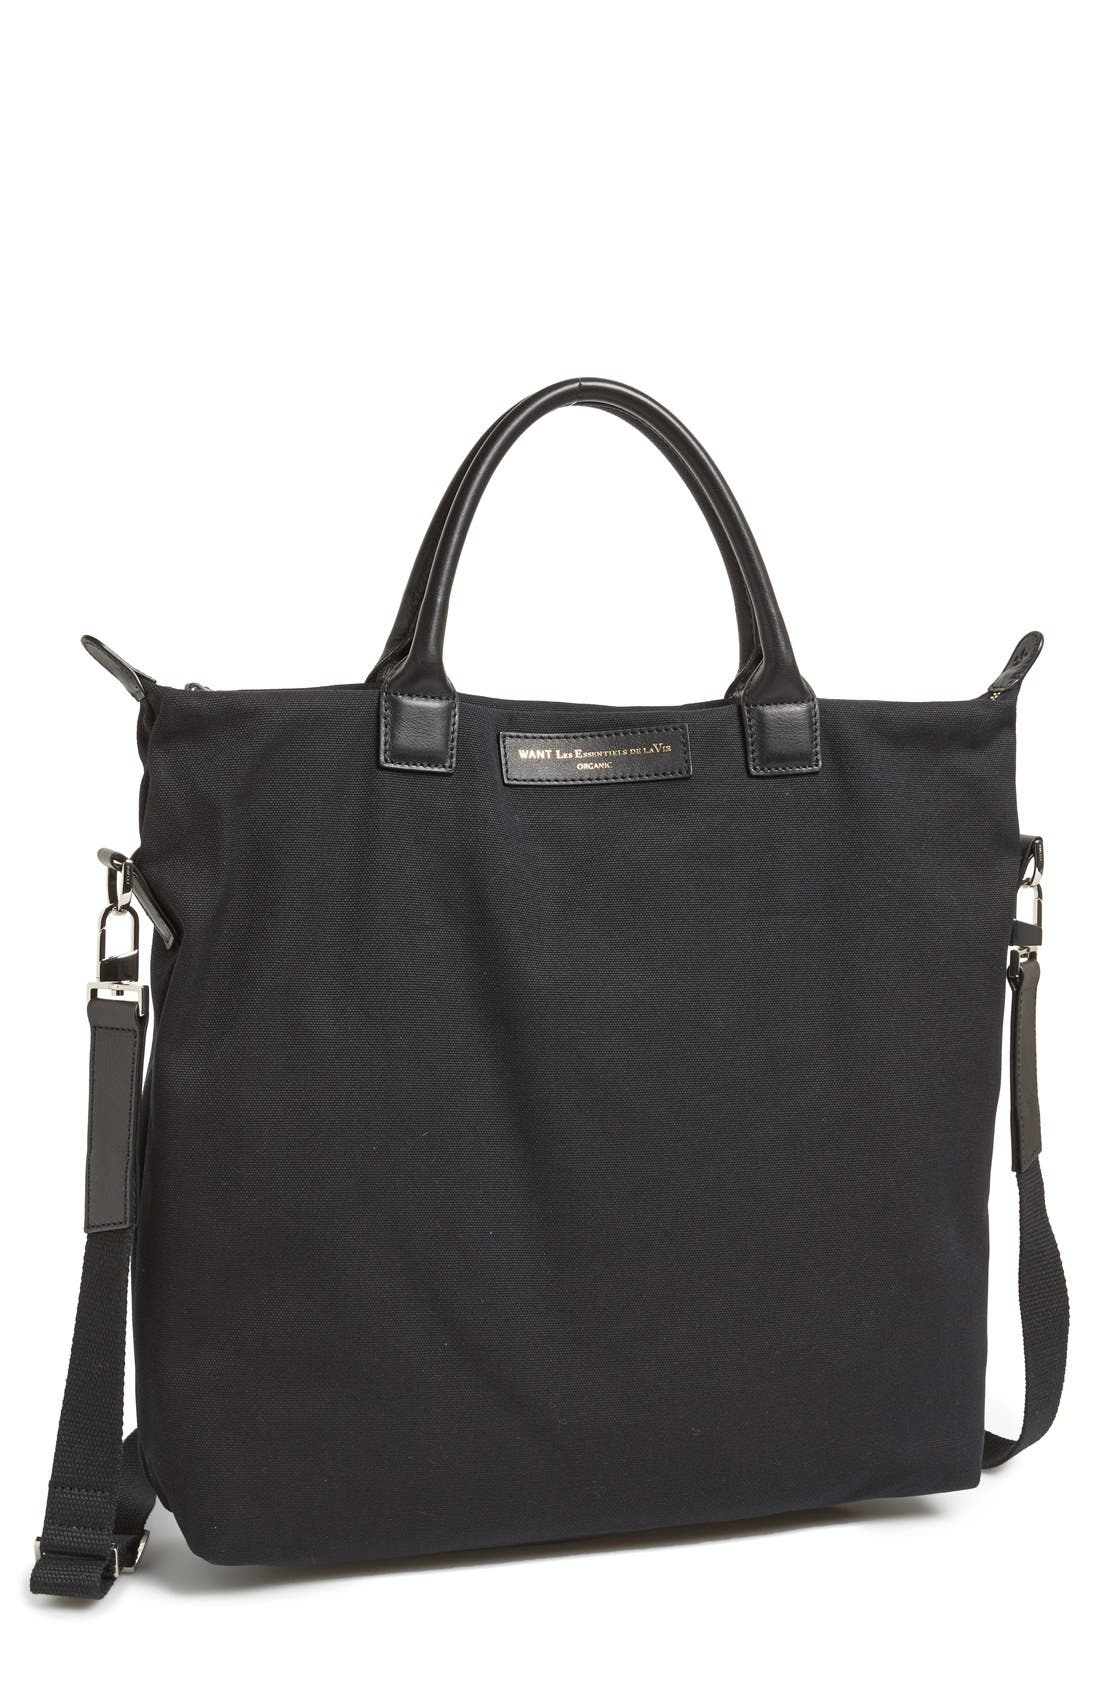 WANT LES ESSENTIELS OHare Tote Bag